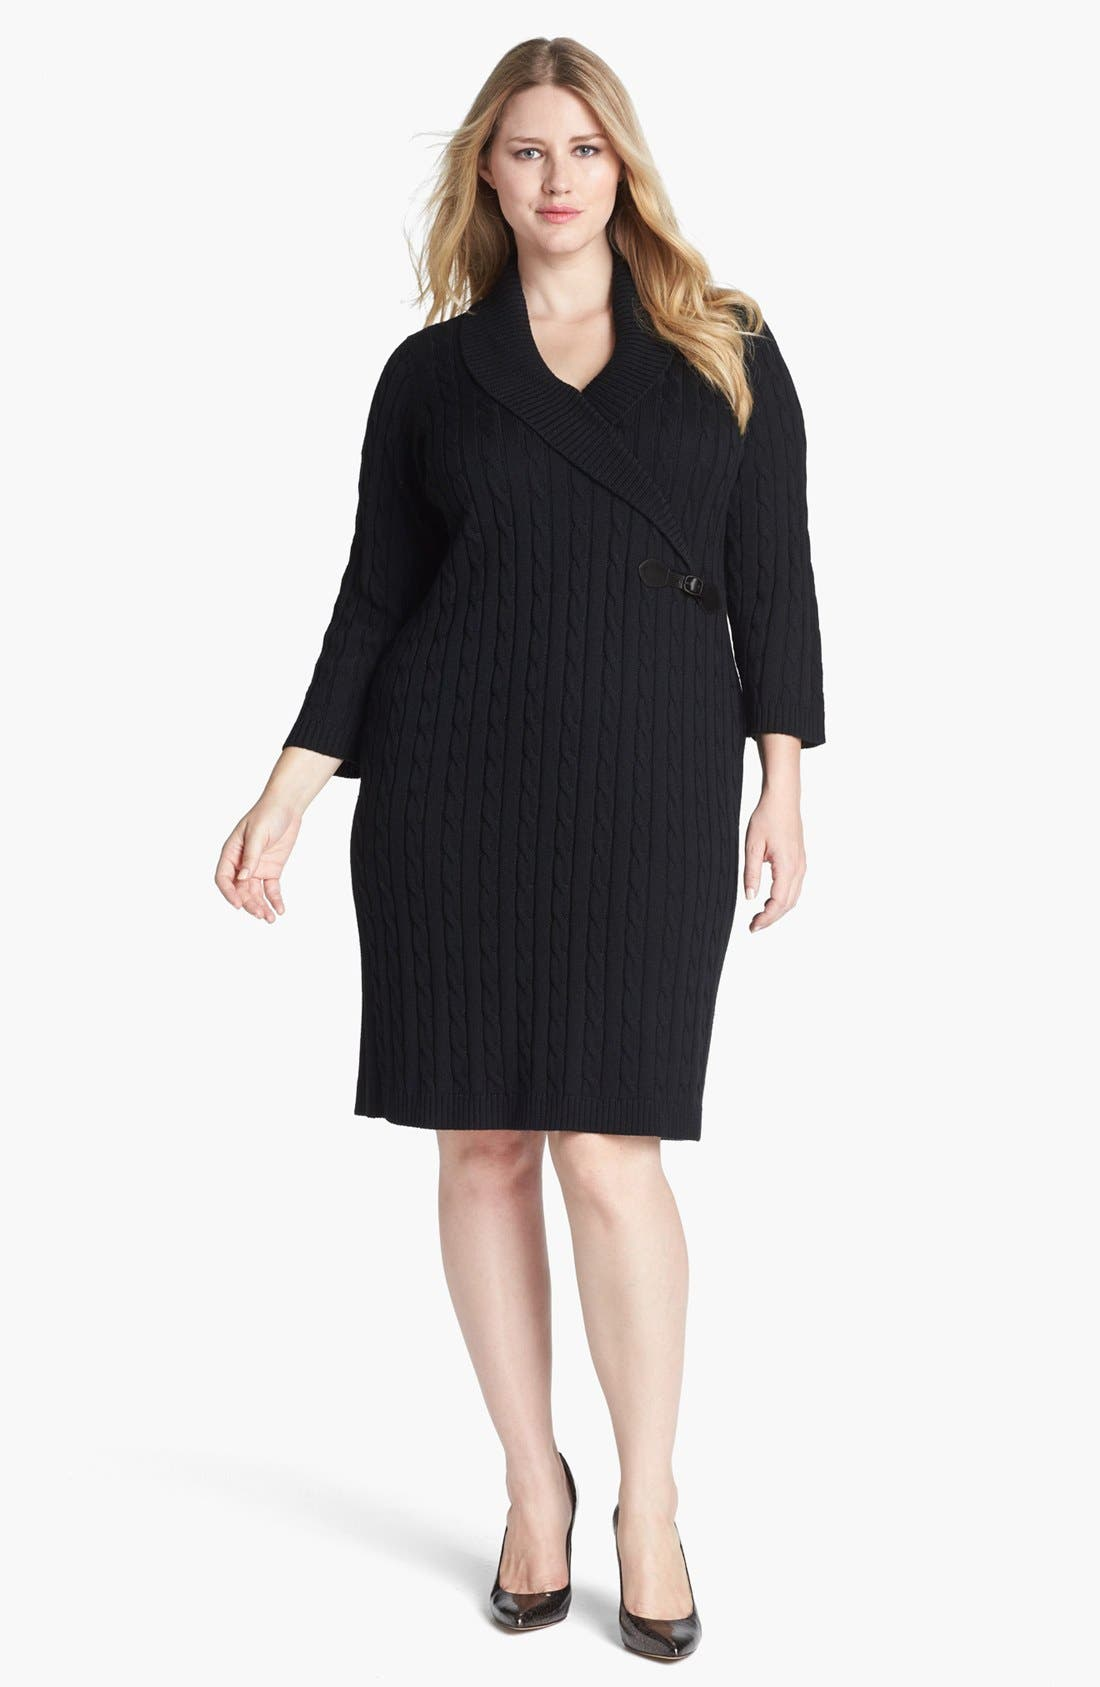 Alternate Image 1 Selected - Calvin Klein Faux Wrap Sweater Dress (Plus Size)